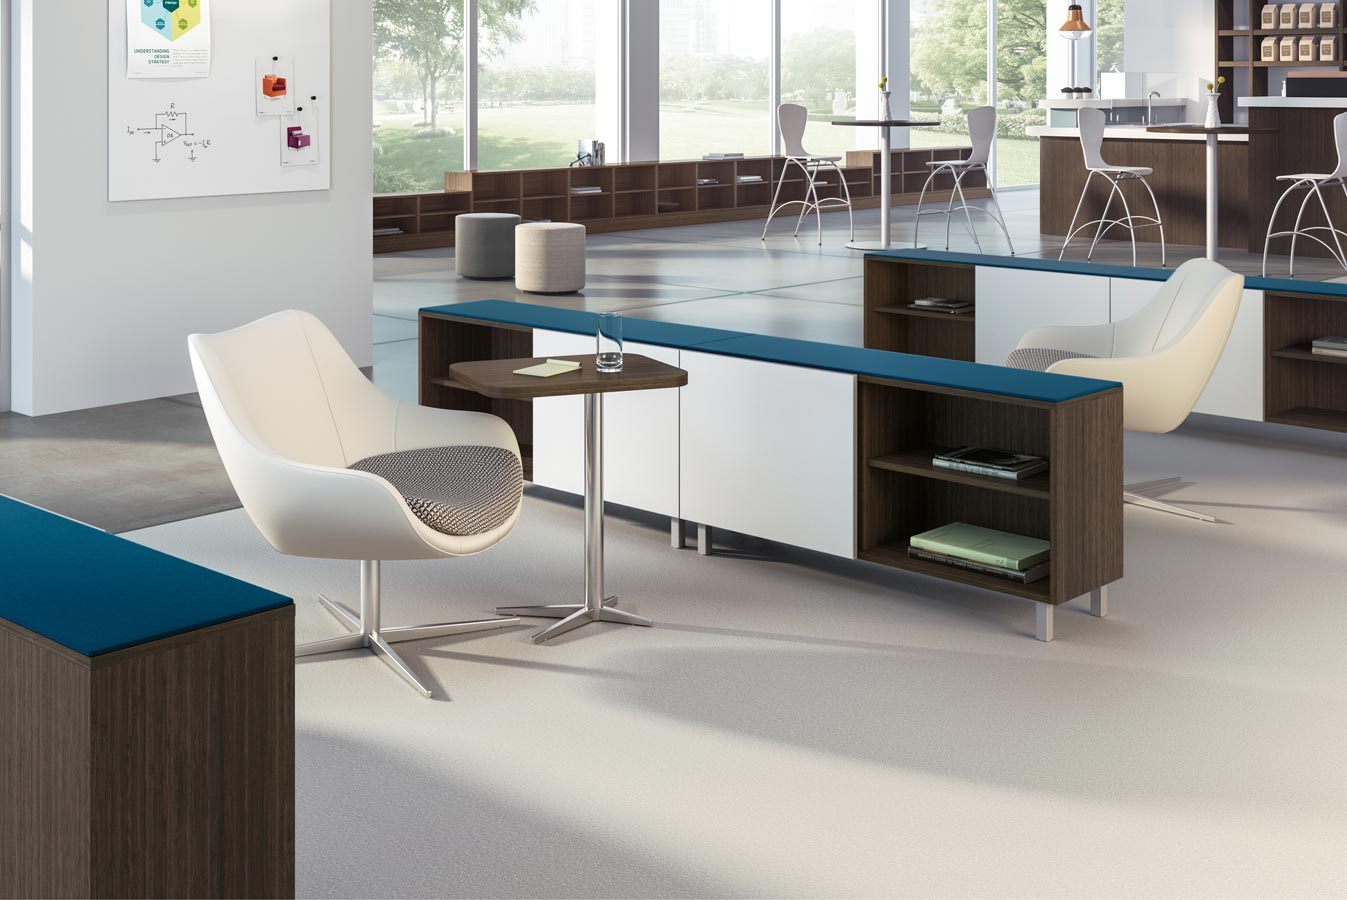 Premium Office Furniture Products OstermanCron - Kimball office furniture